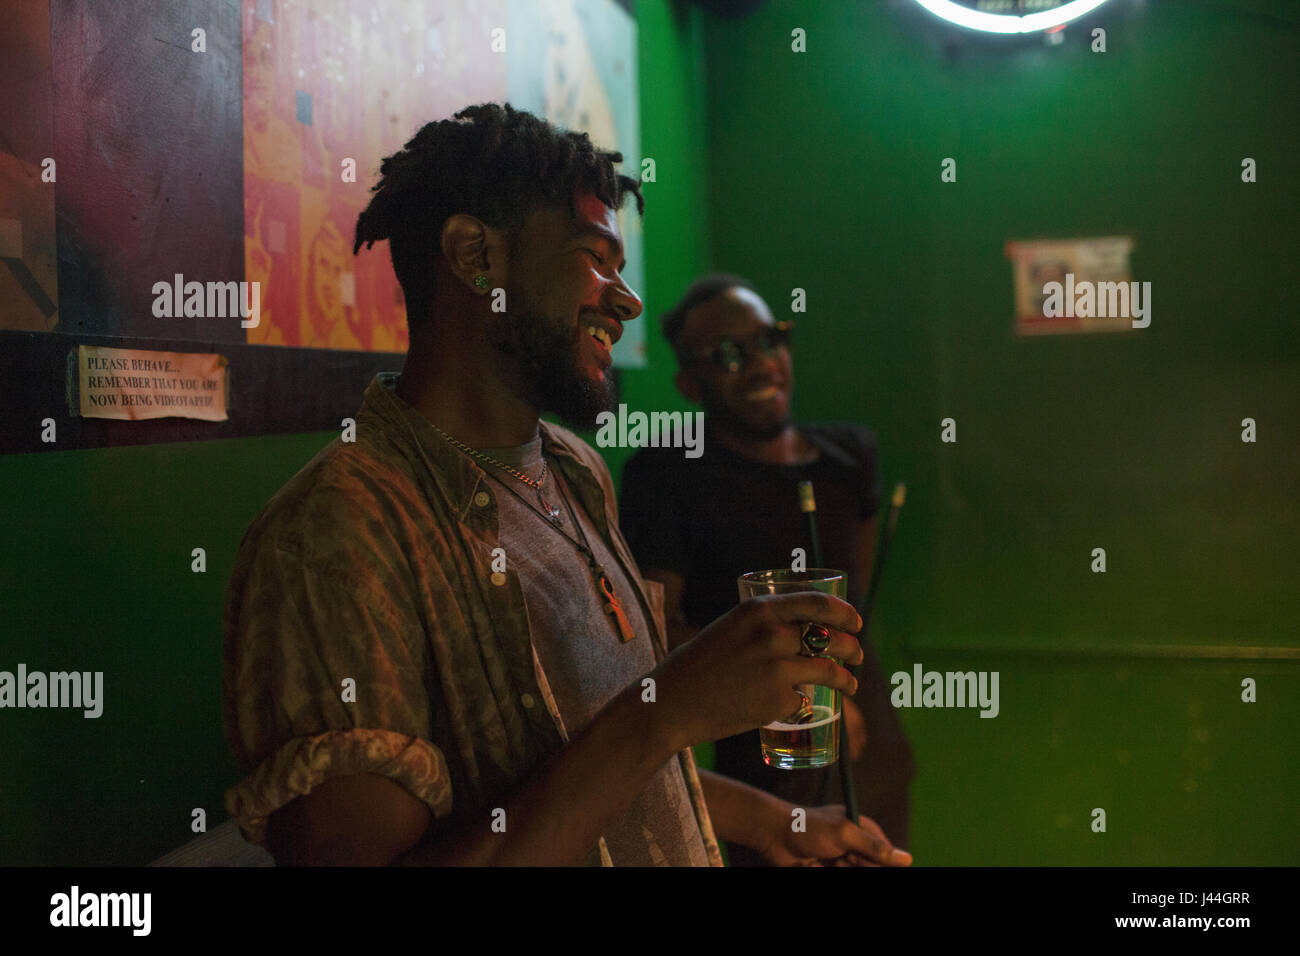 Two young men at a bar. - Stock Image